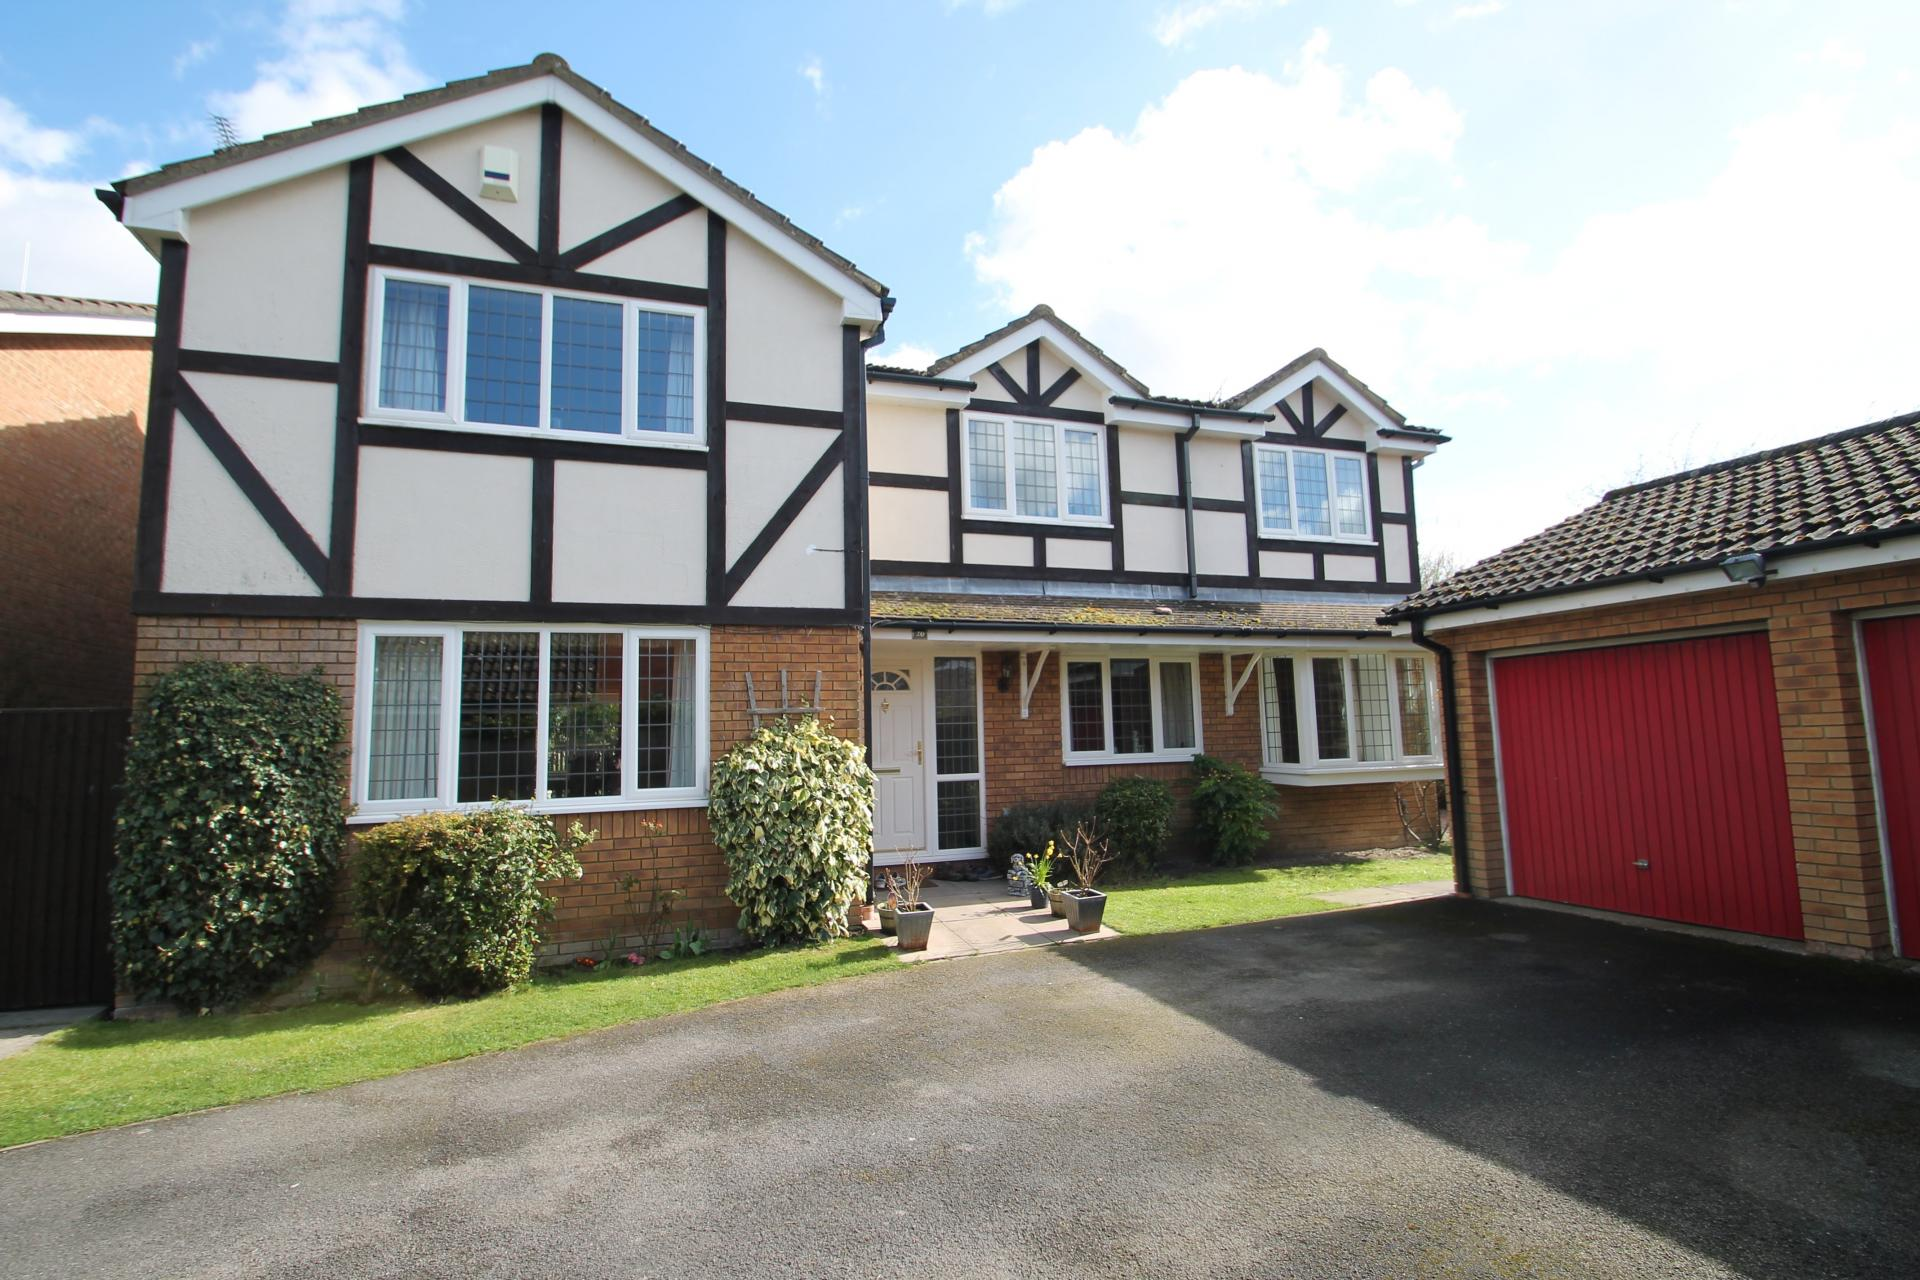 Property For Sale In Eaton Bray Buckinghamshire